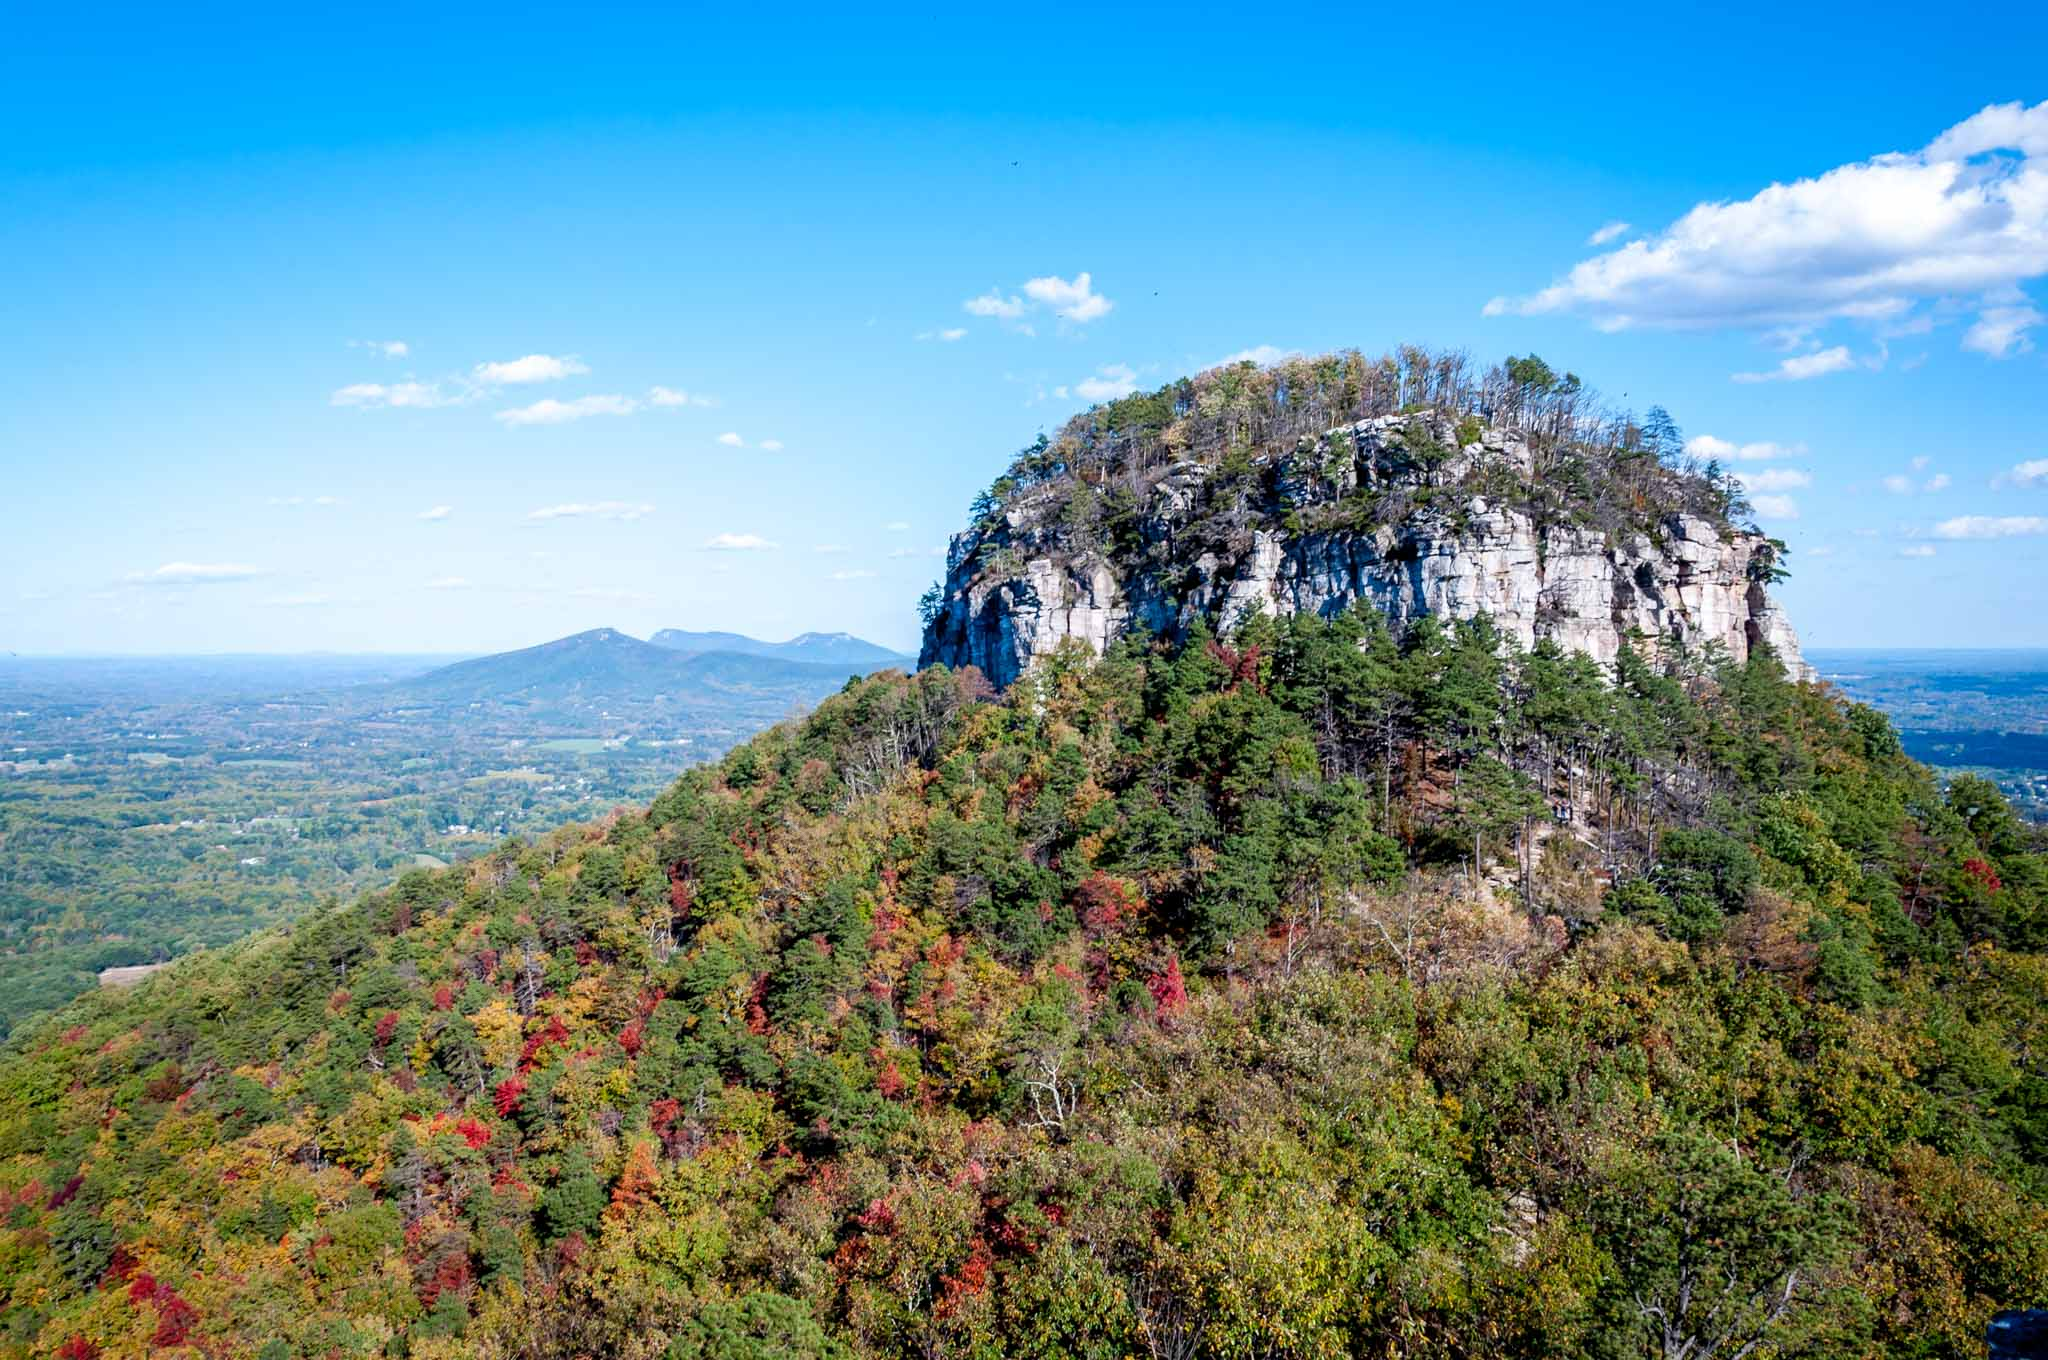 Mountain covered in fall foliage at Pilot Mountain State Park